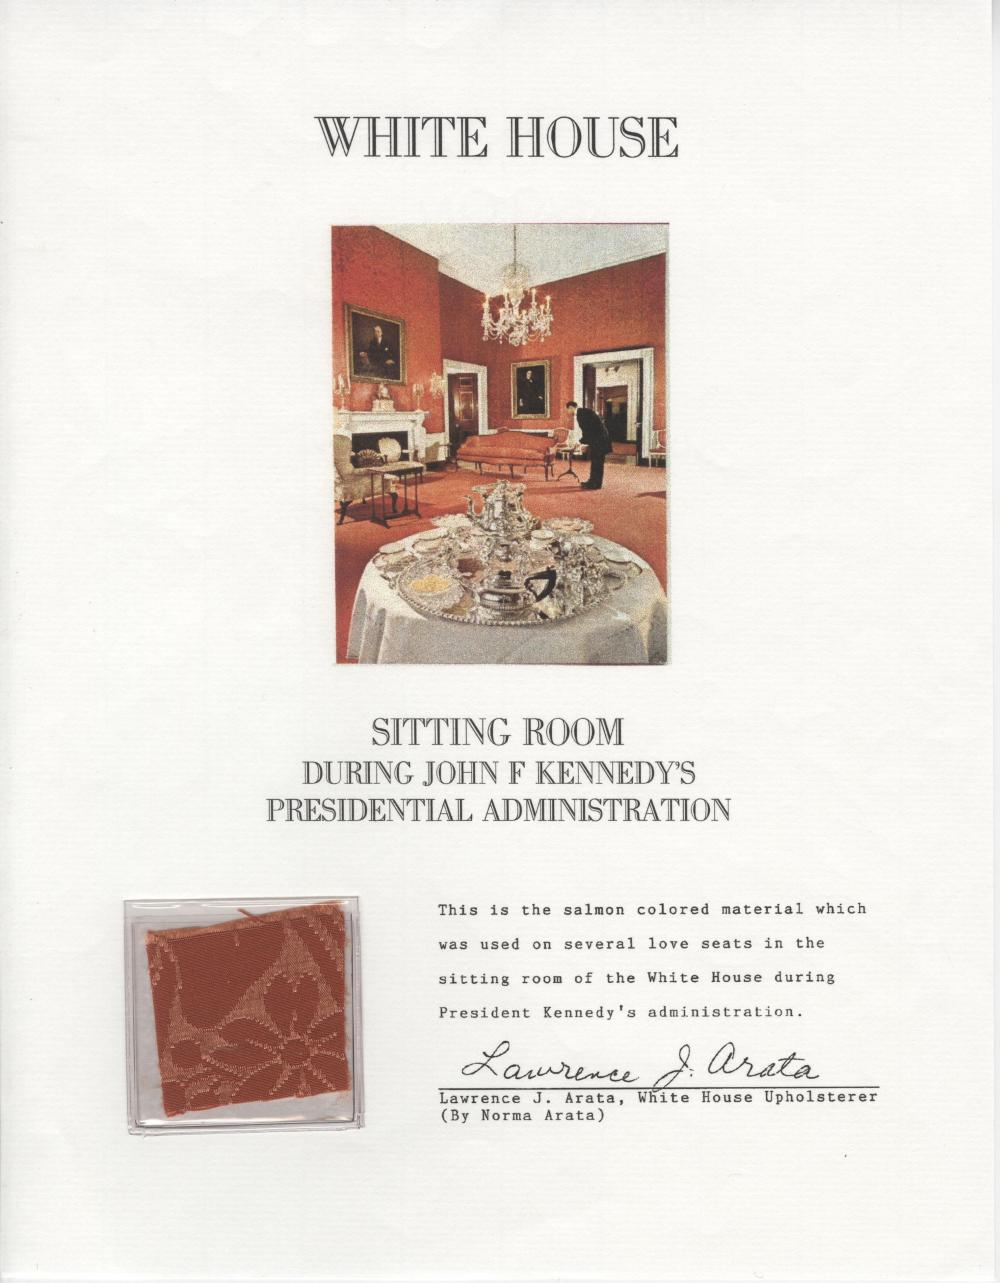 Kennedy Administration, White House Fabric from the Era of Camelot